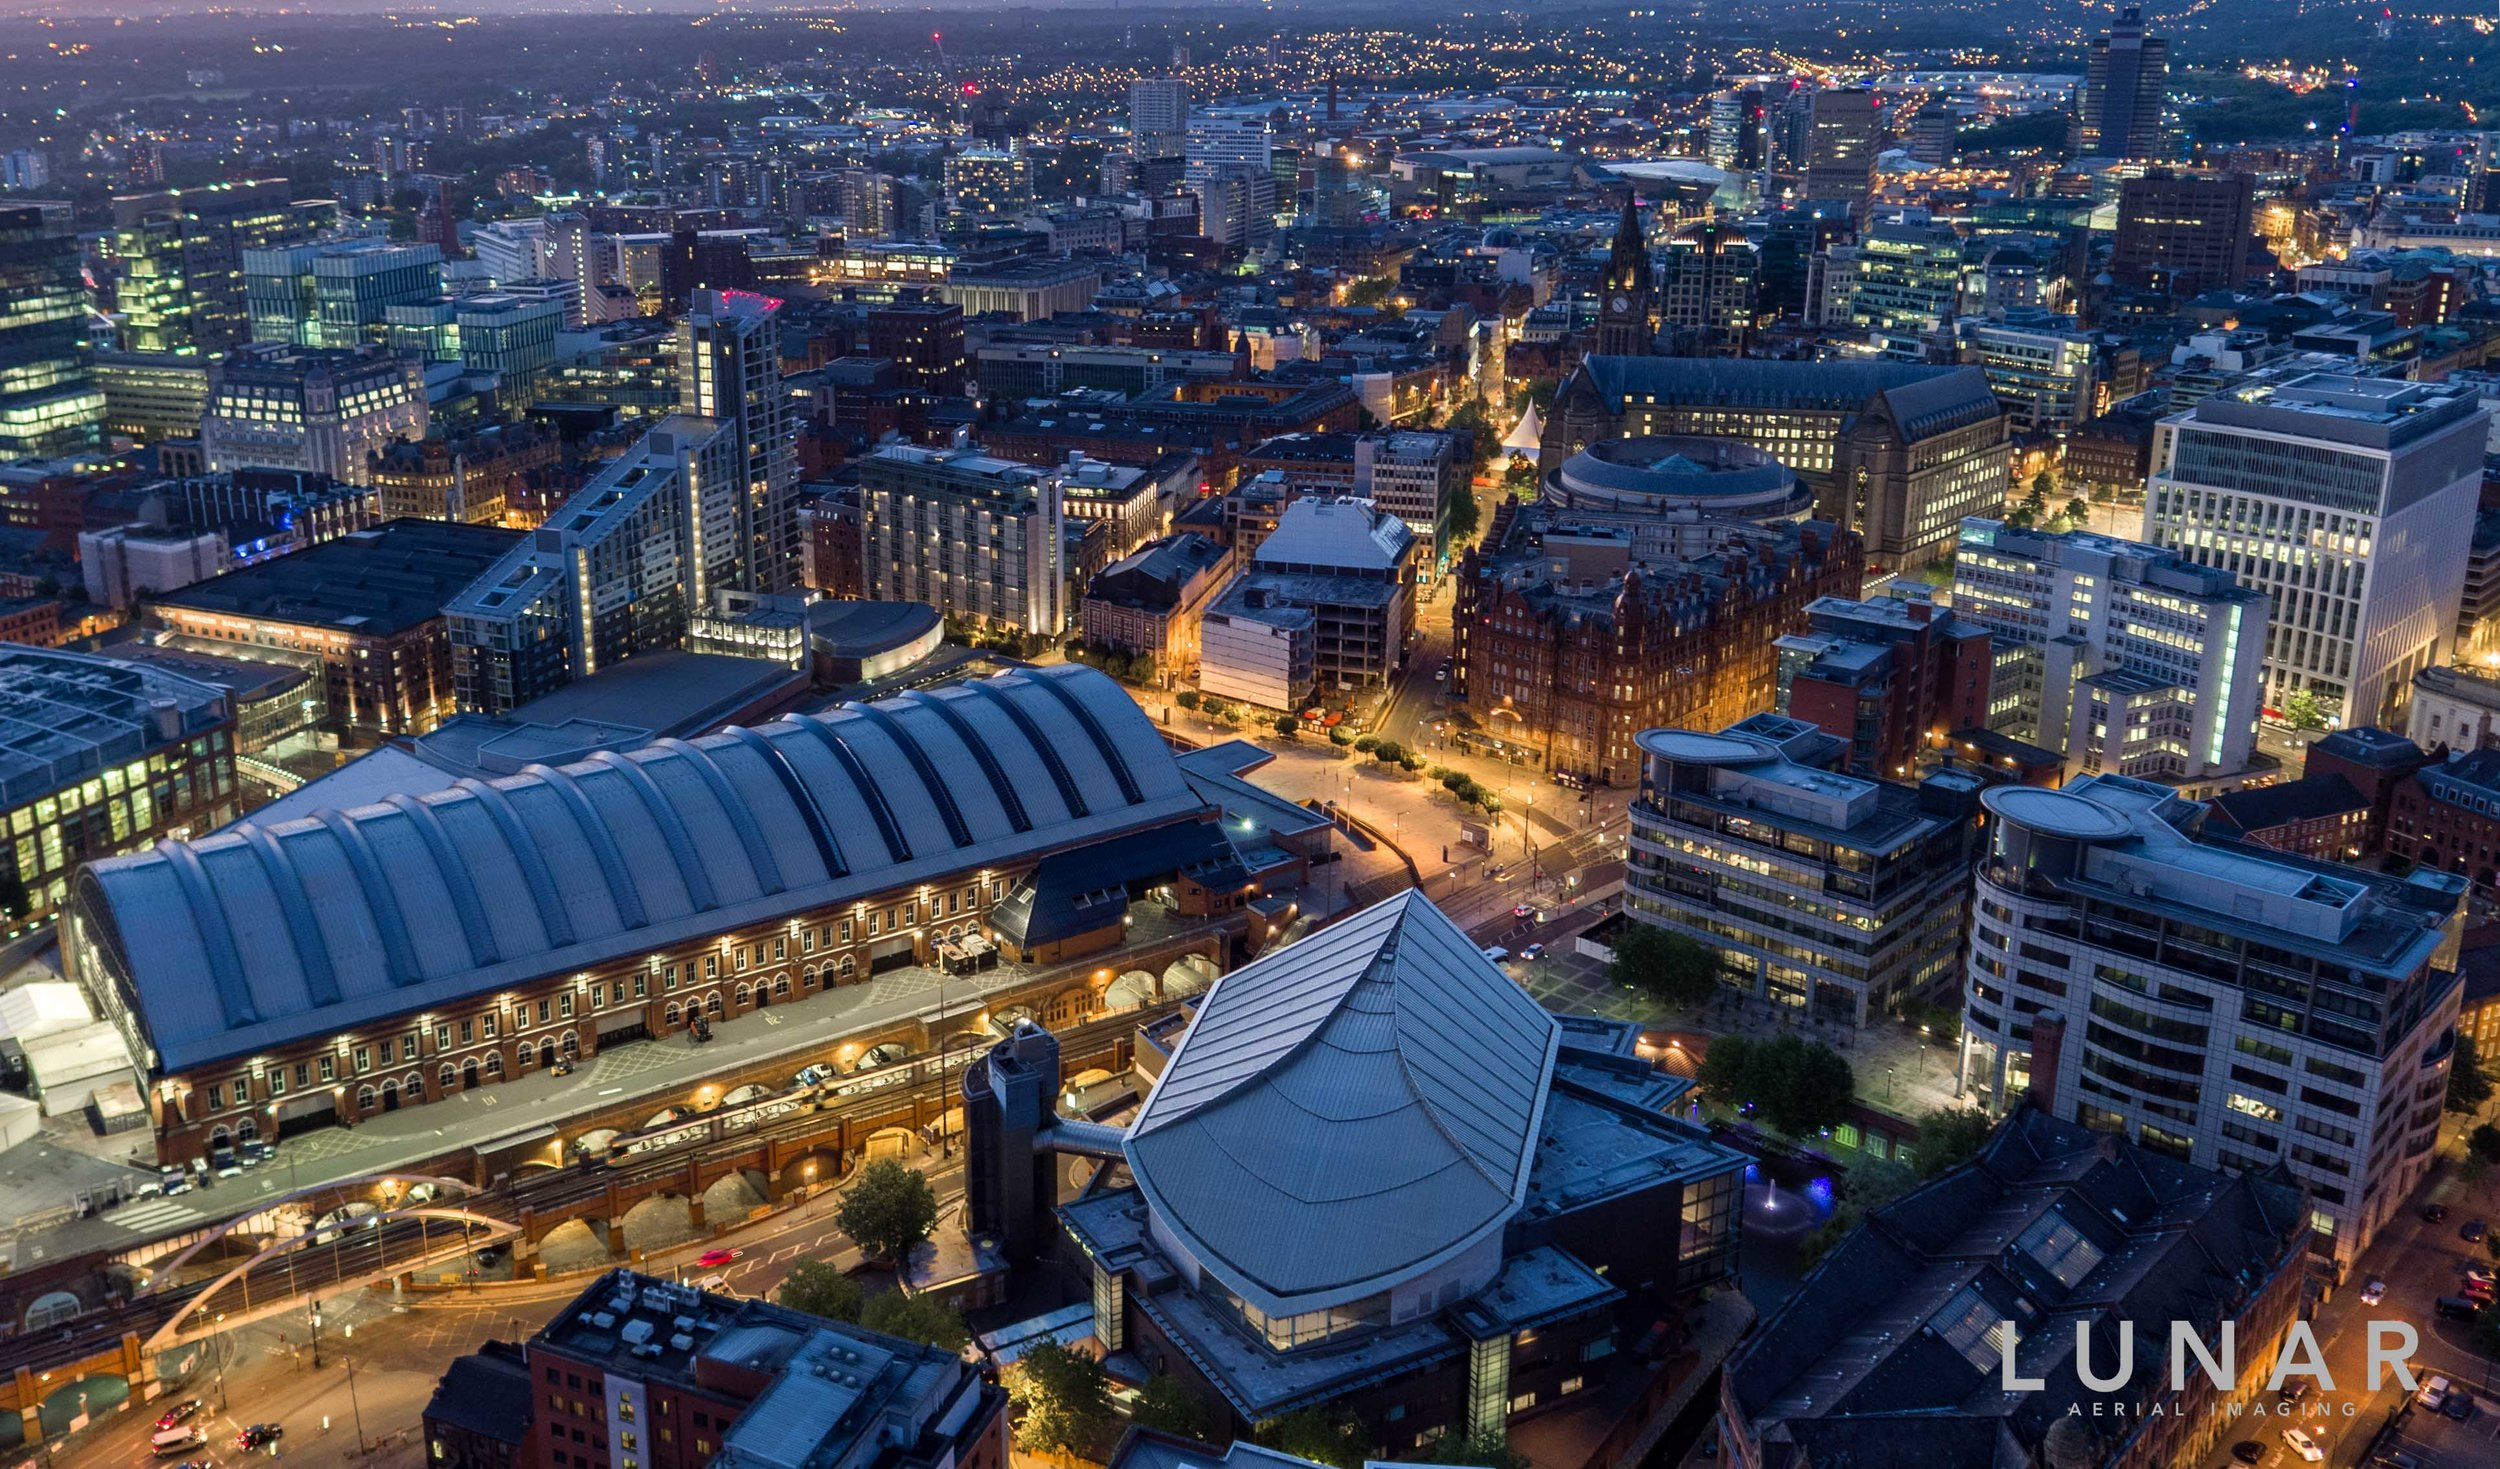 Aerial photo at night of Manchester including Manchester Central and he Bridgewater Hall